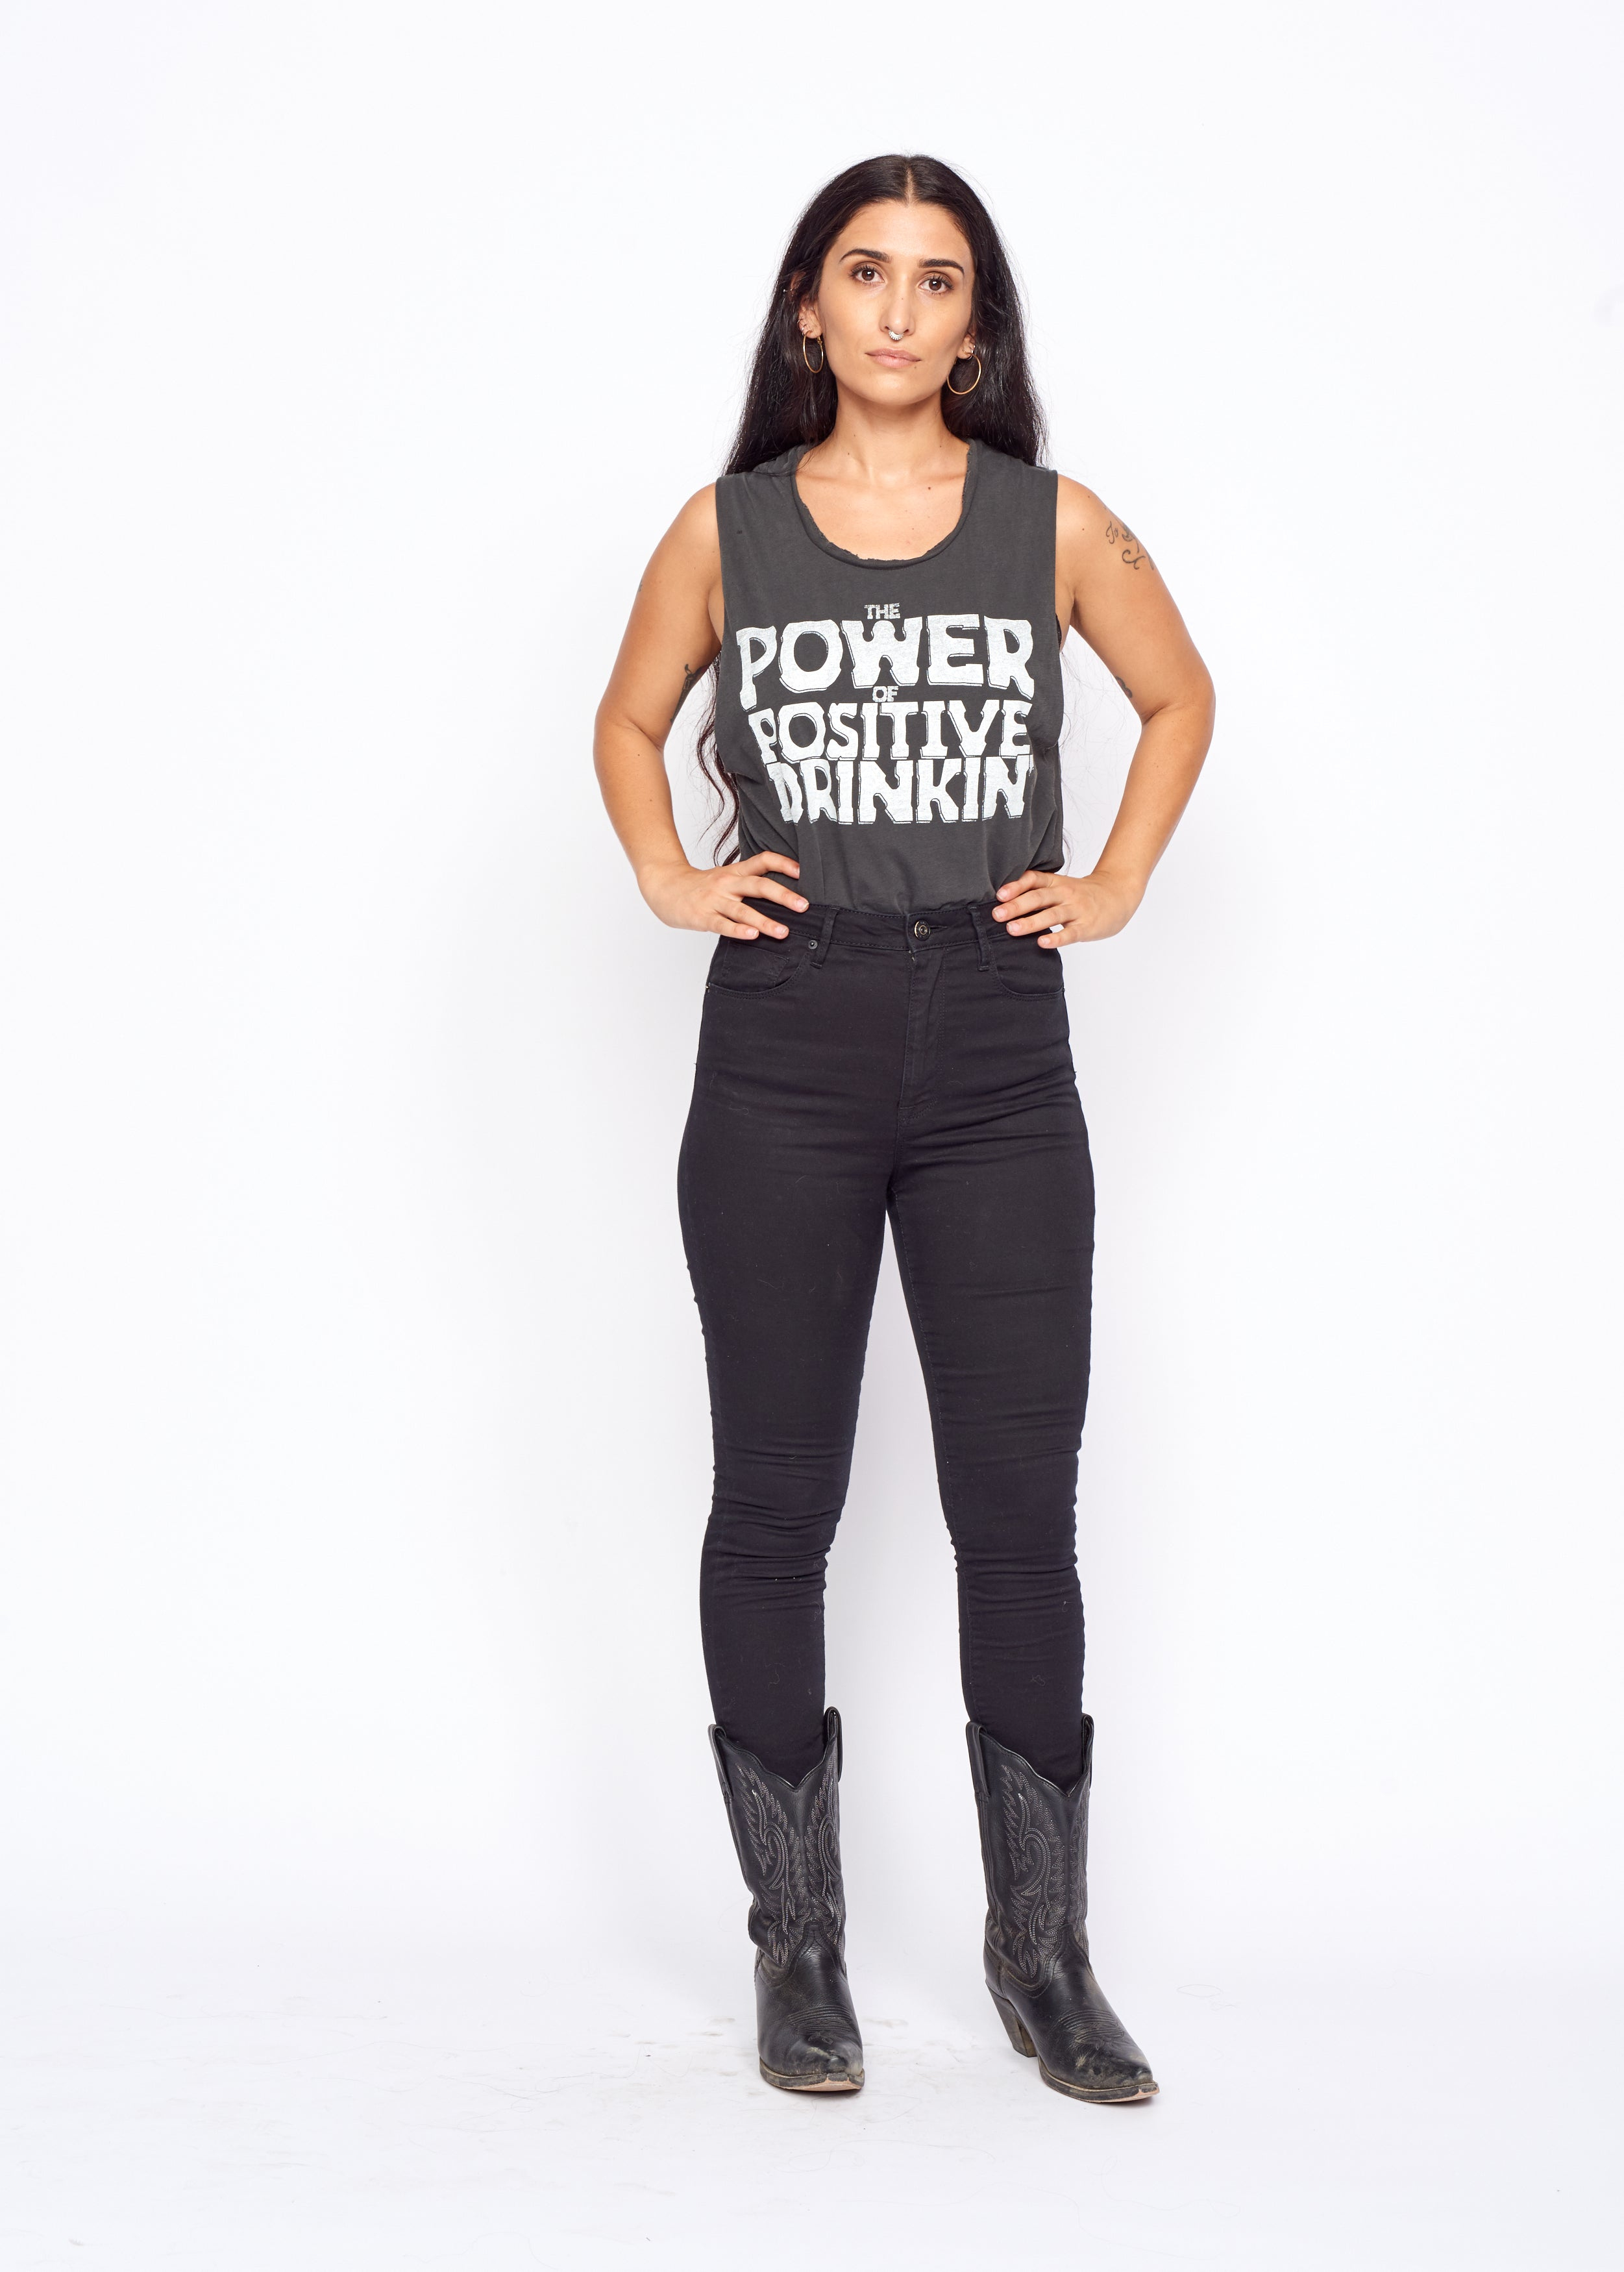 Power of Positive Drinking Gilley's Muscle Tee - Women's Muscle Tee - Midnight Rider